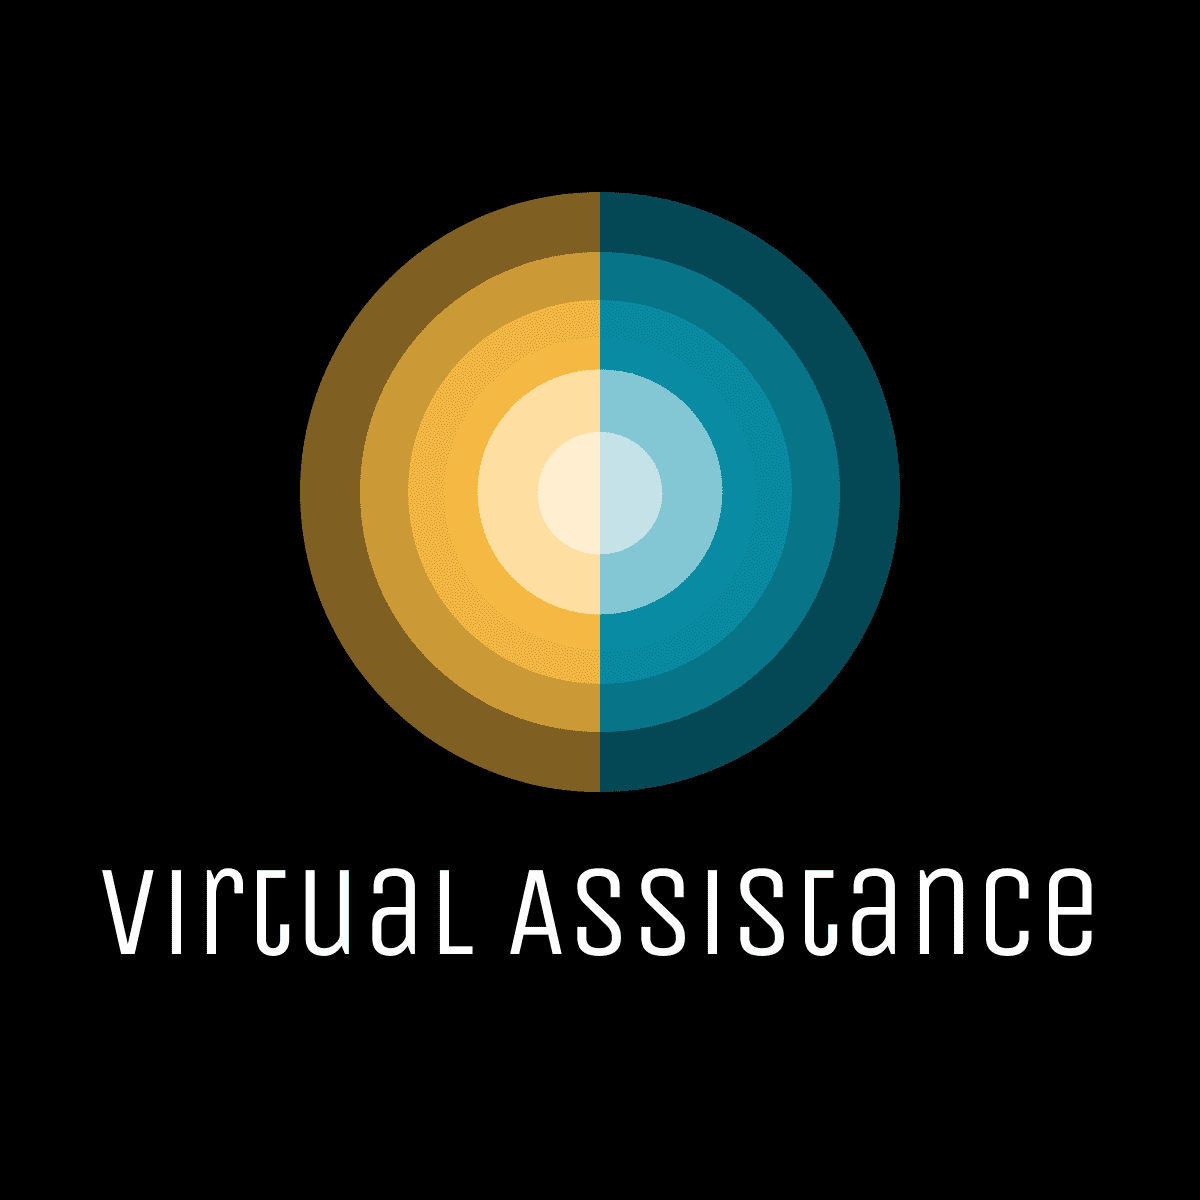 Virtual Assistance